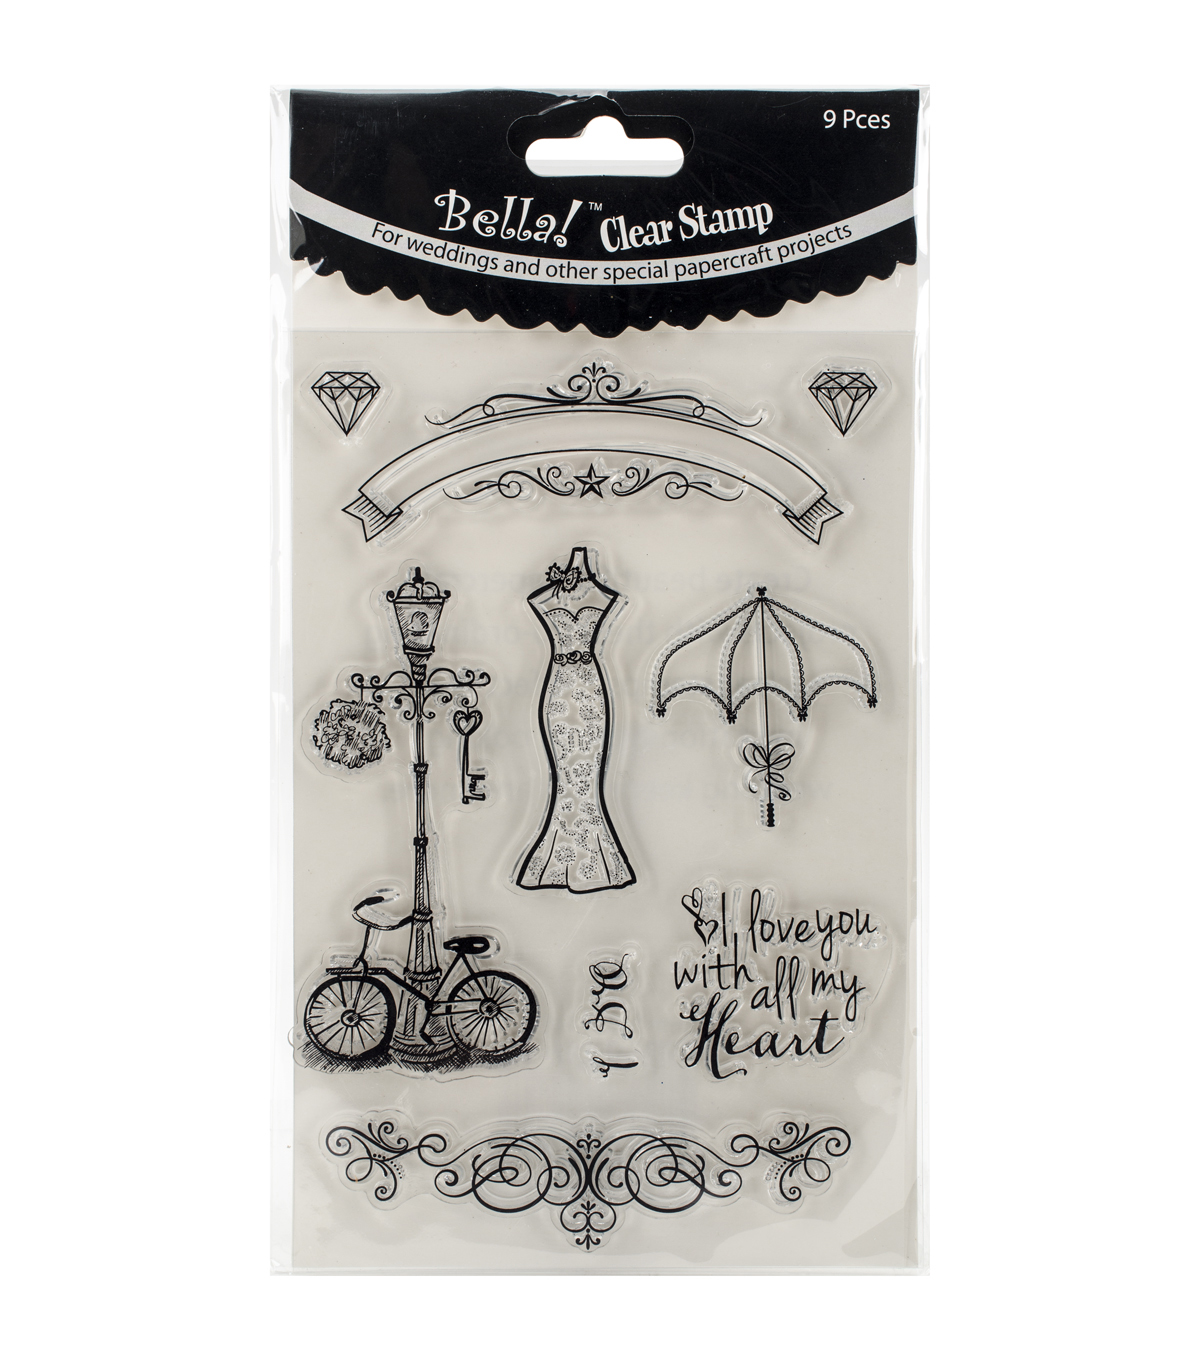 Bella! Wedding Clear Stamps 9 pcs